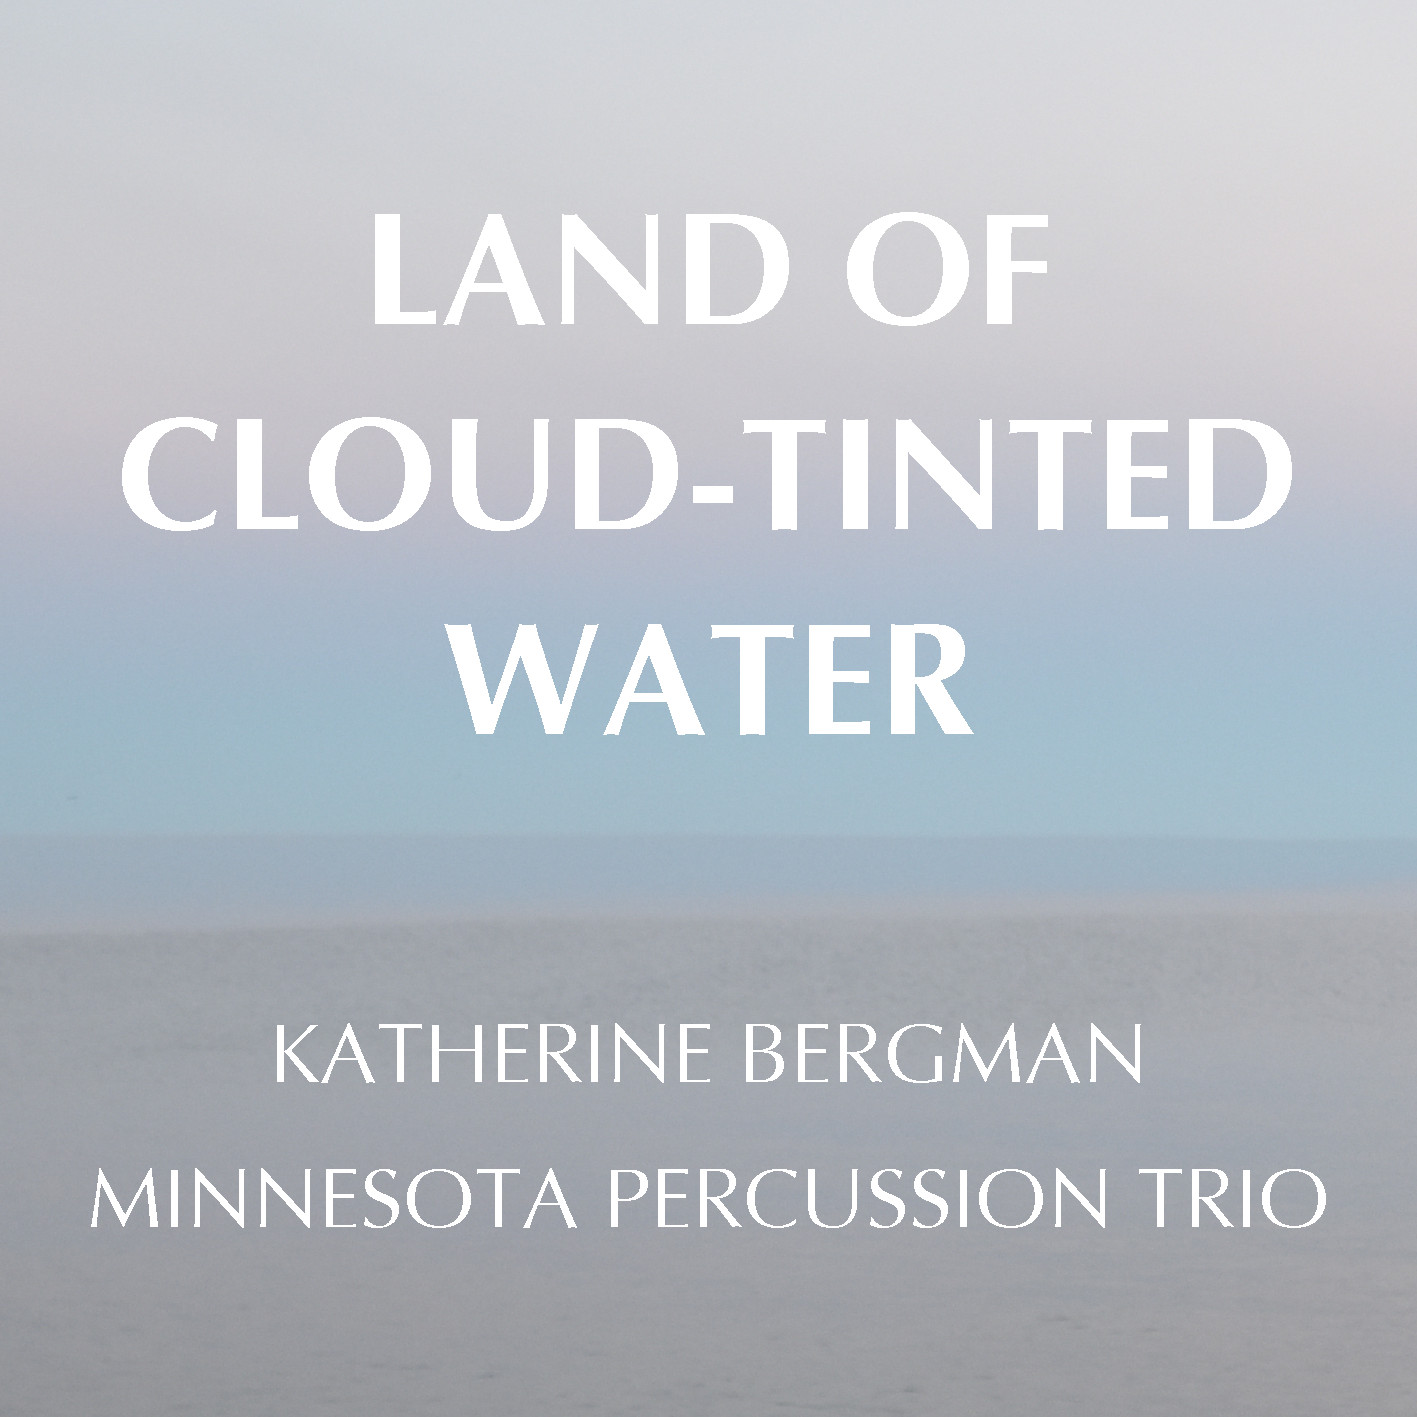 Land of Cloud-Tinted Water